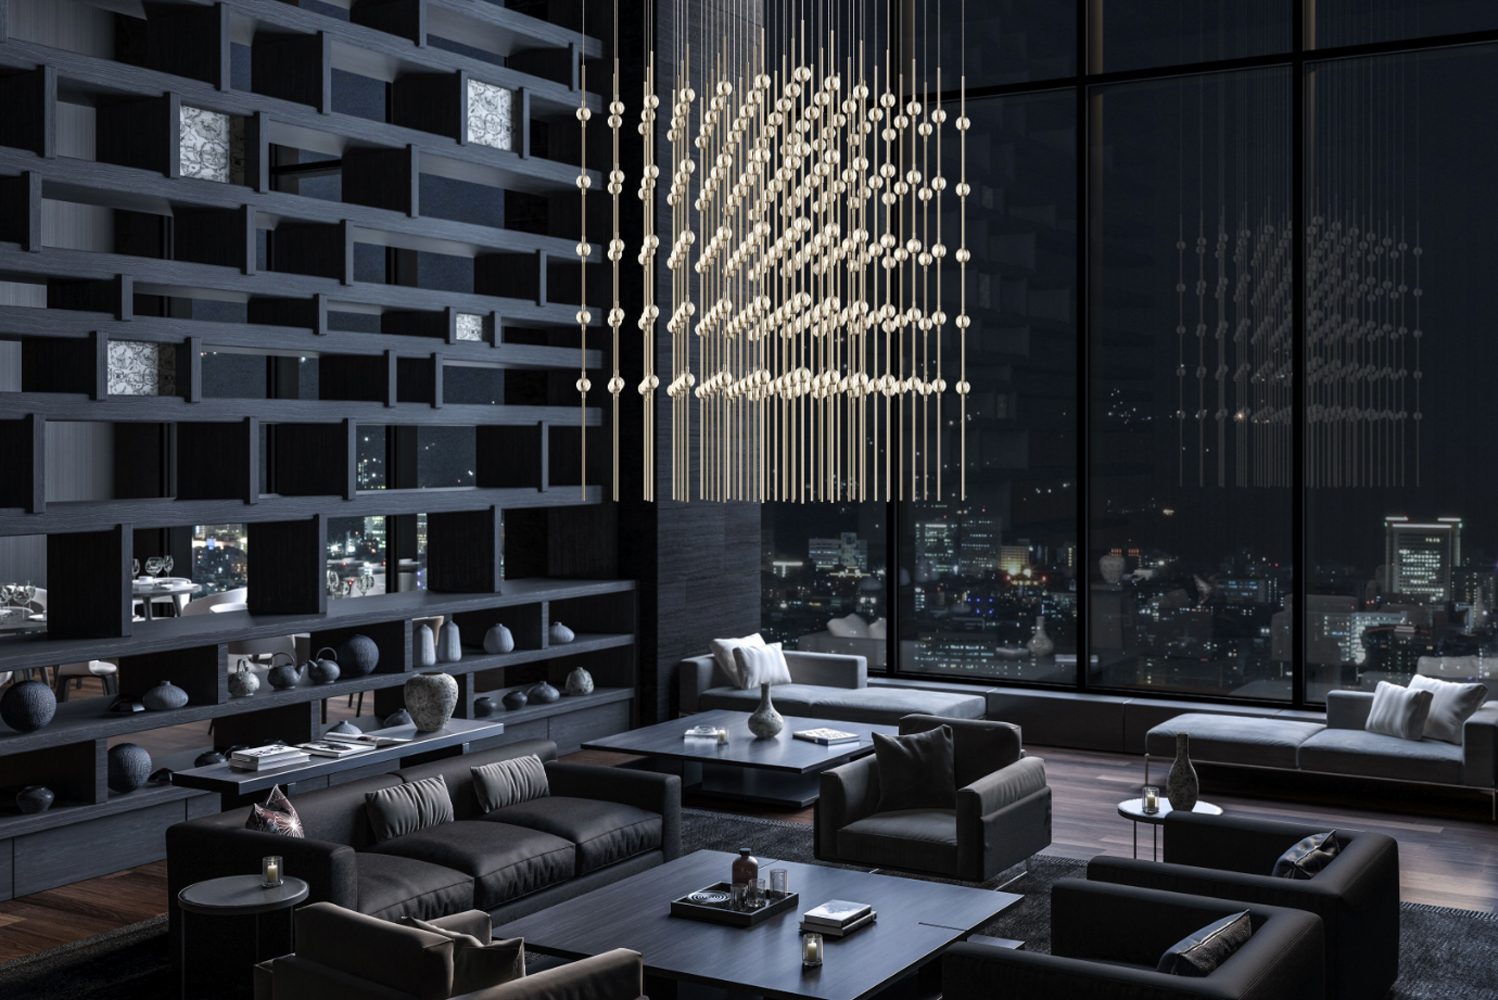 Introducing Cosmic Cube, a new configuration of the Constellation collection from SONNEMAN–A Way of Light.